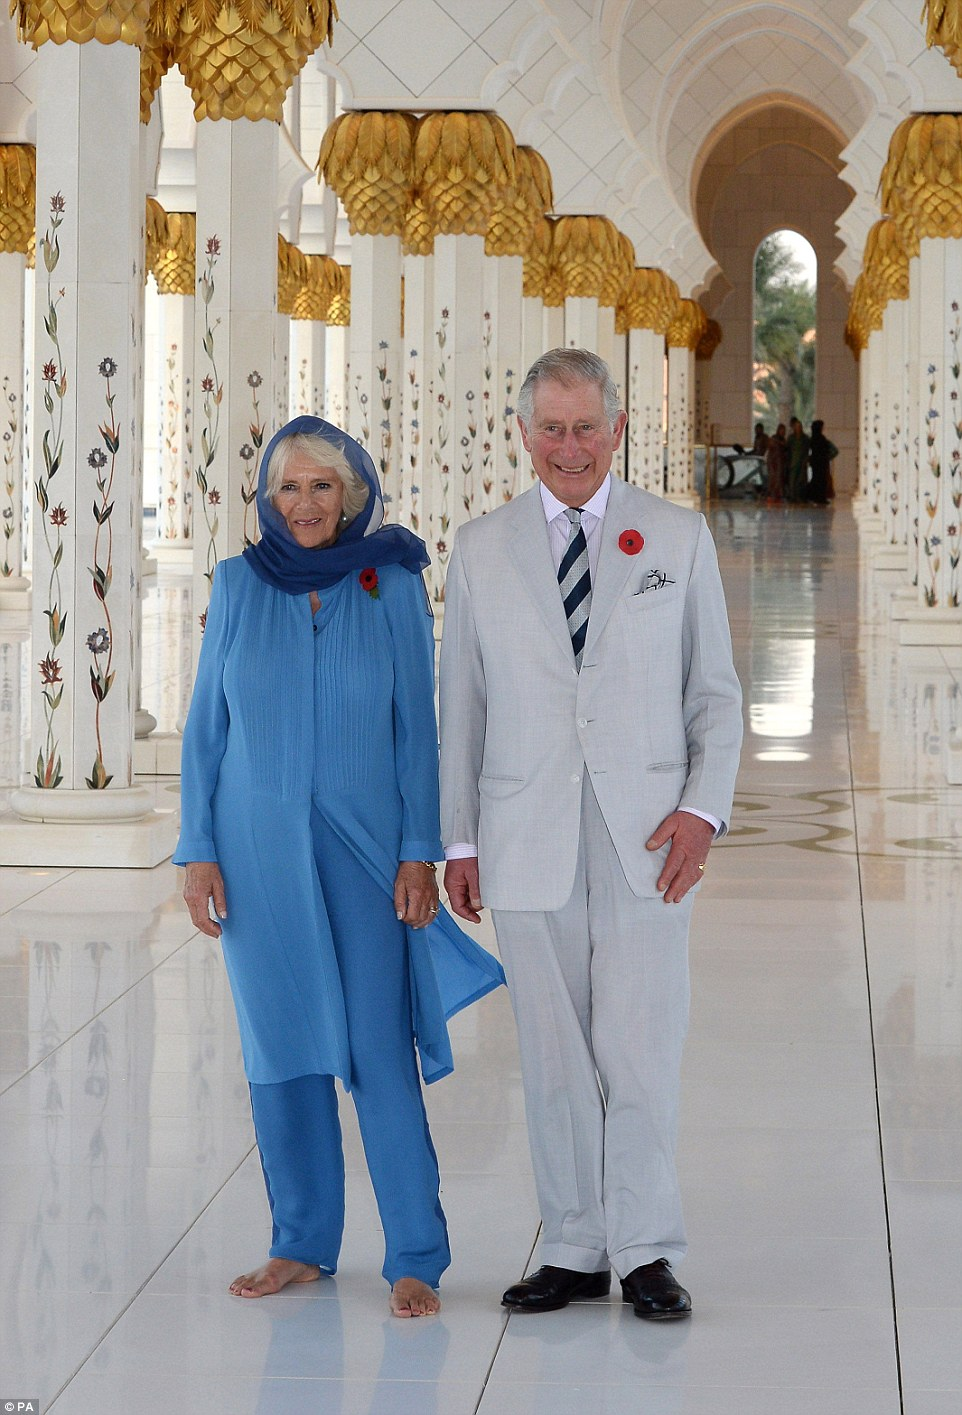 Prince Charles was dressed in a linen suit and striped tie, while Camilla wore a blue headscarf, long jacket and trousers